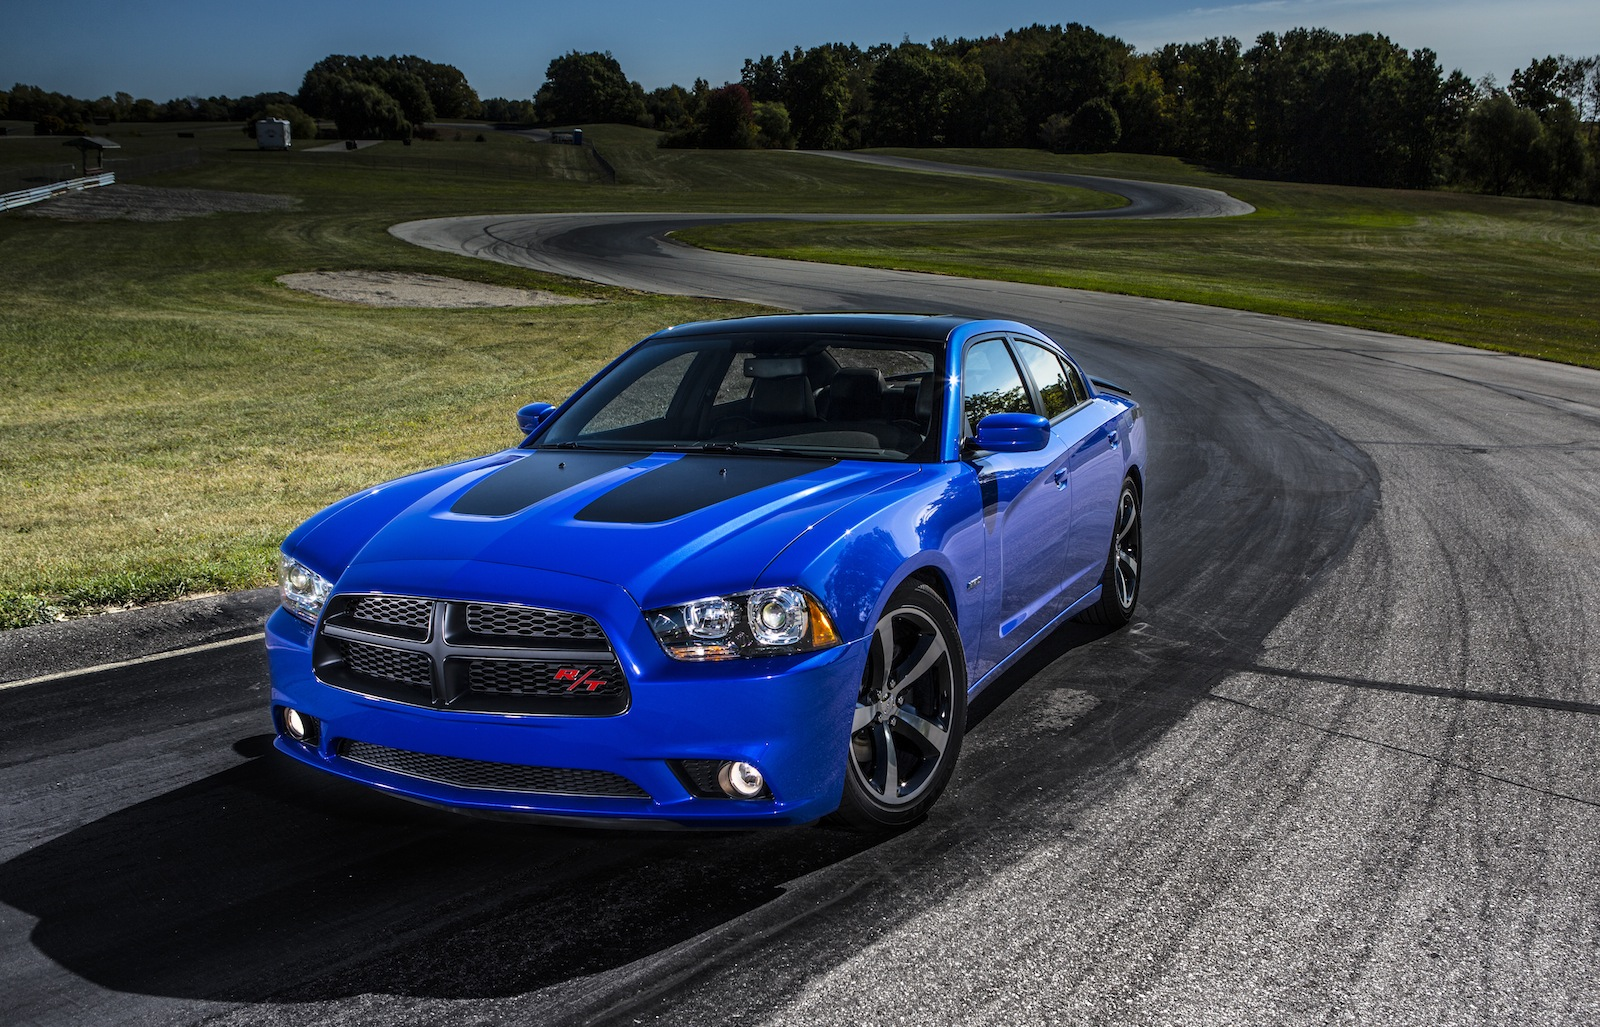 4k Wallpaper Muscle Car Dodge Charger A Chance For Australia In 2014 Photos